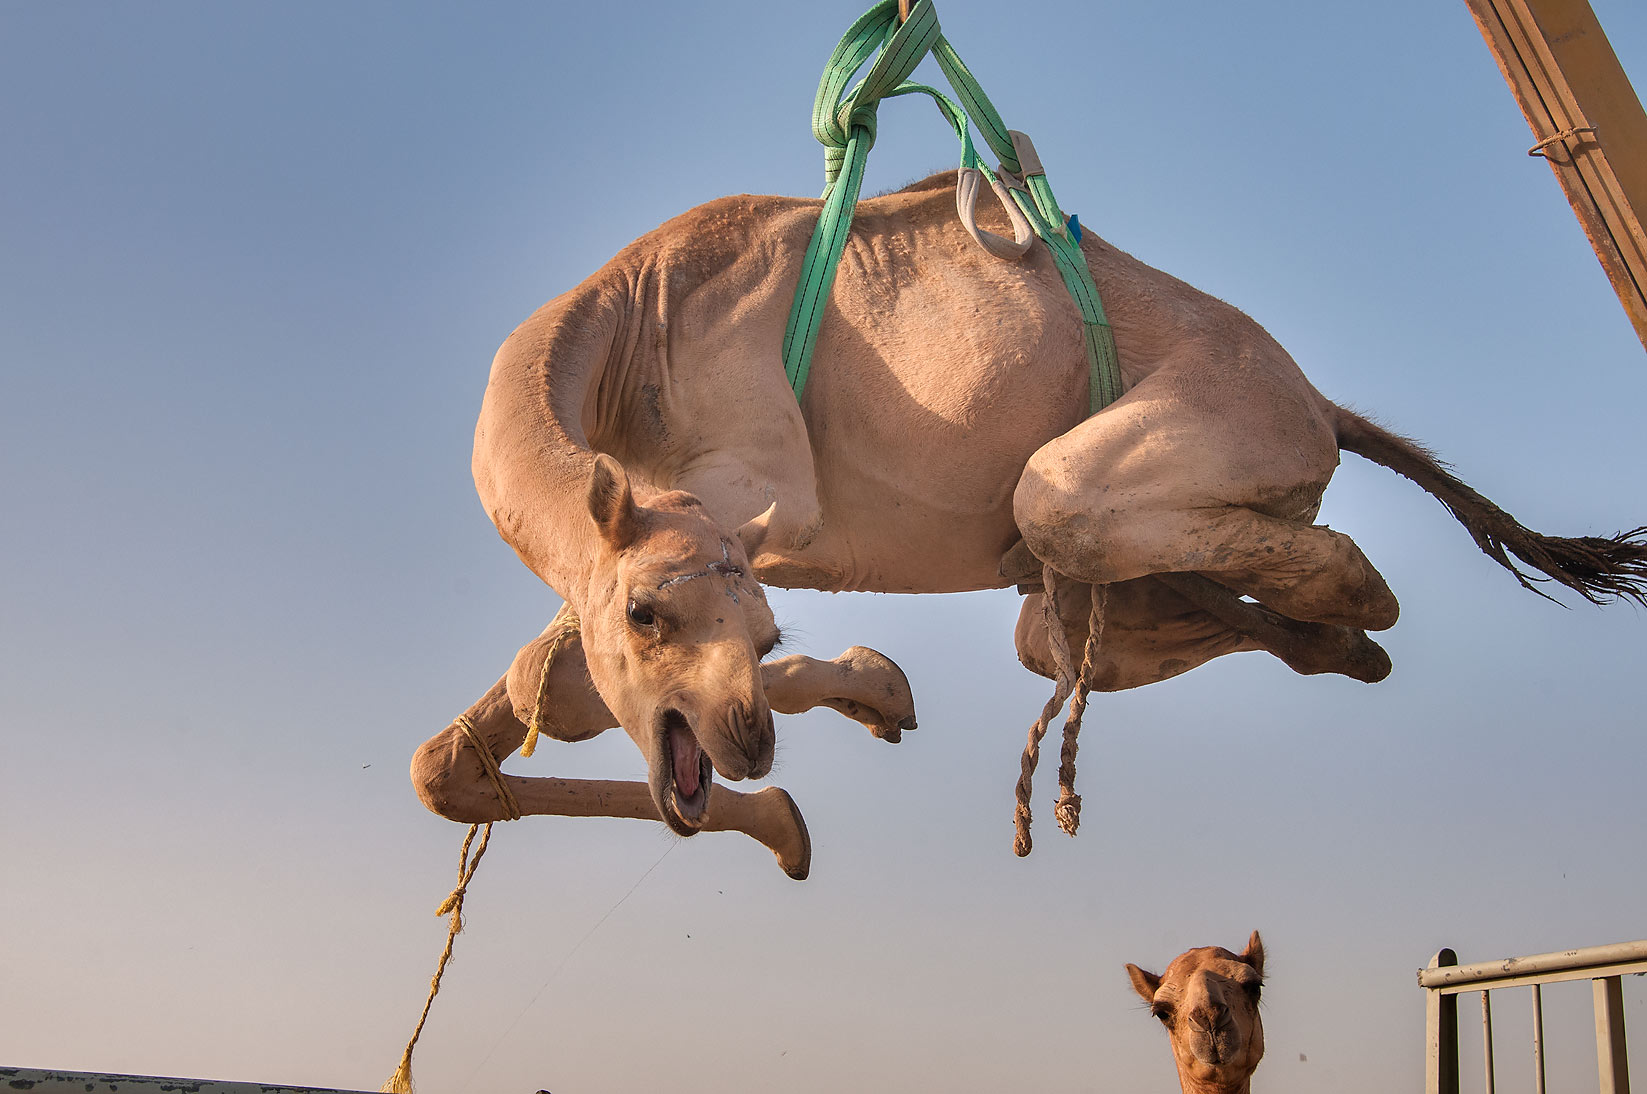 Camel spinning in air after it was lifted by...Market, Abu Hamour area. Doha, Qatar